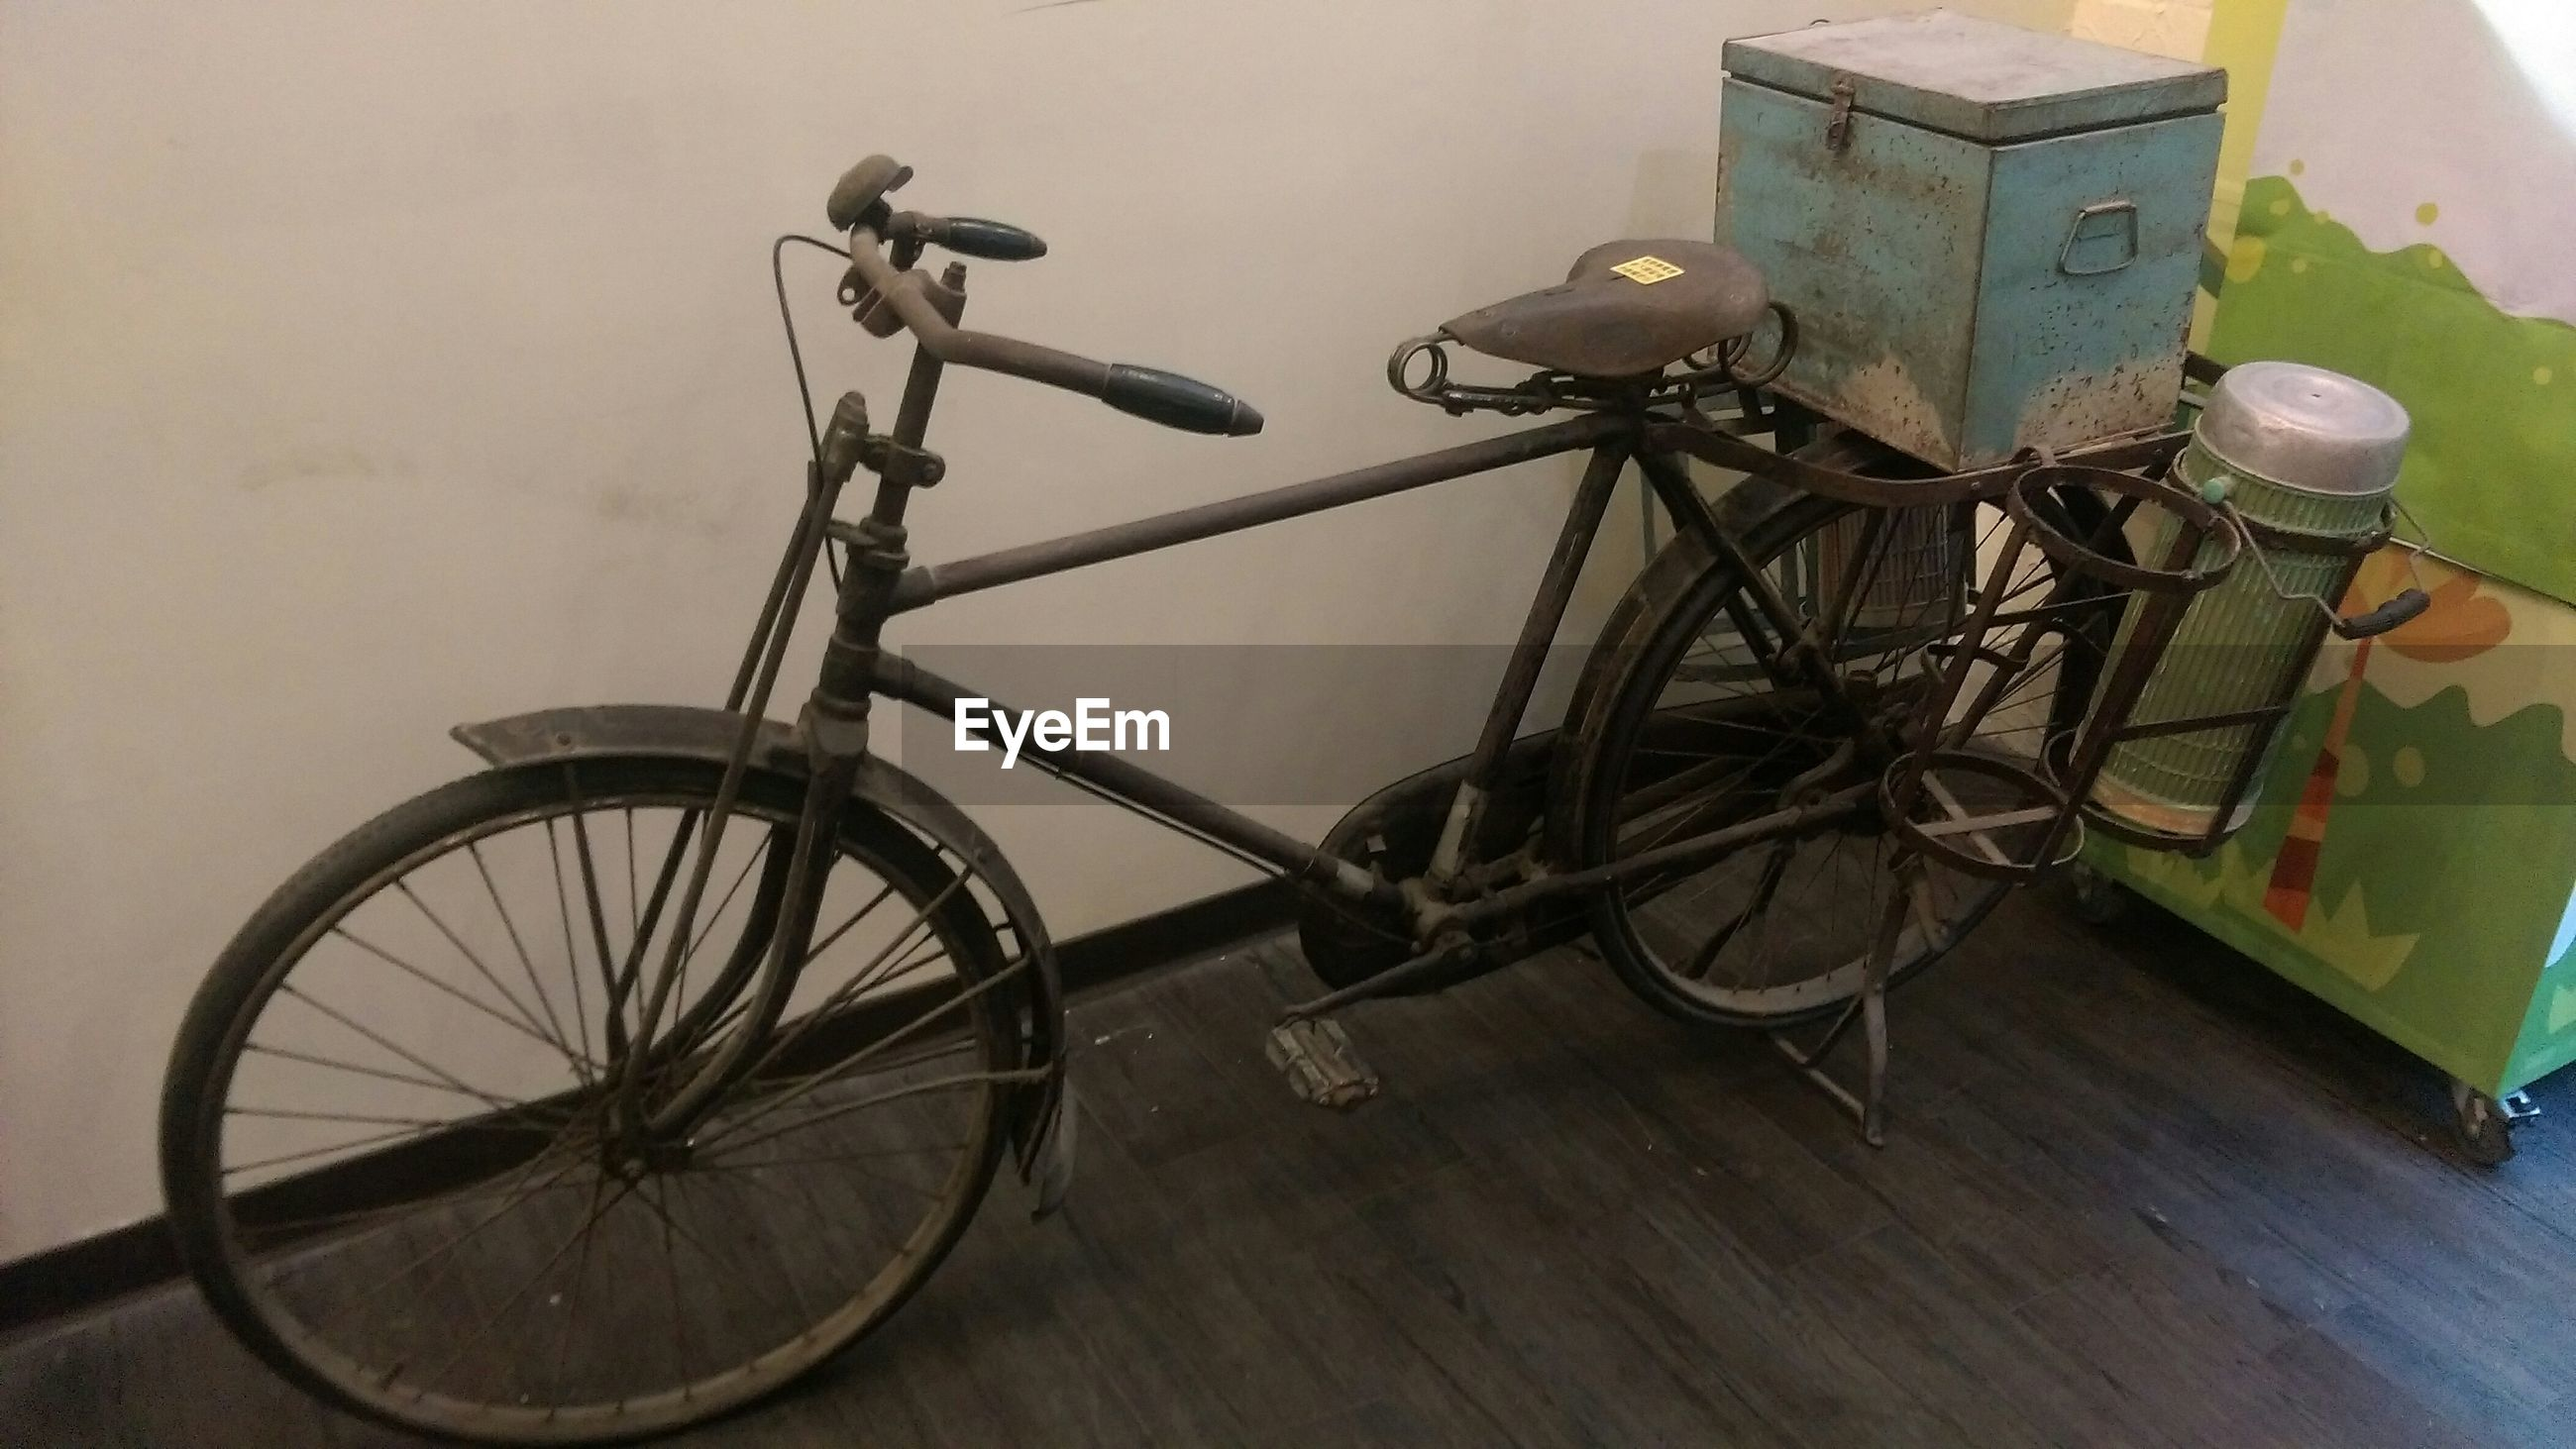 bicycle, built structure, stationary, architecture, parked, land vehicle, transportation, parking, building exterior, mode of transport, wall - building feature, wheel, house, no people, outdoors, day, wall, old-fashioned, cycle, leaning